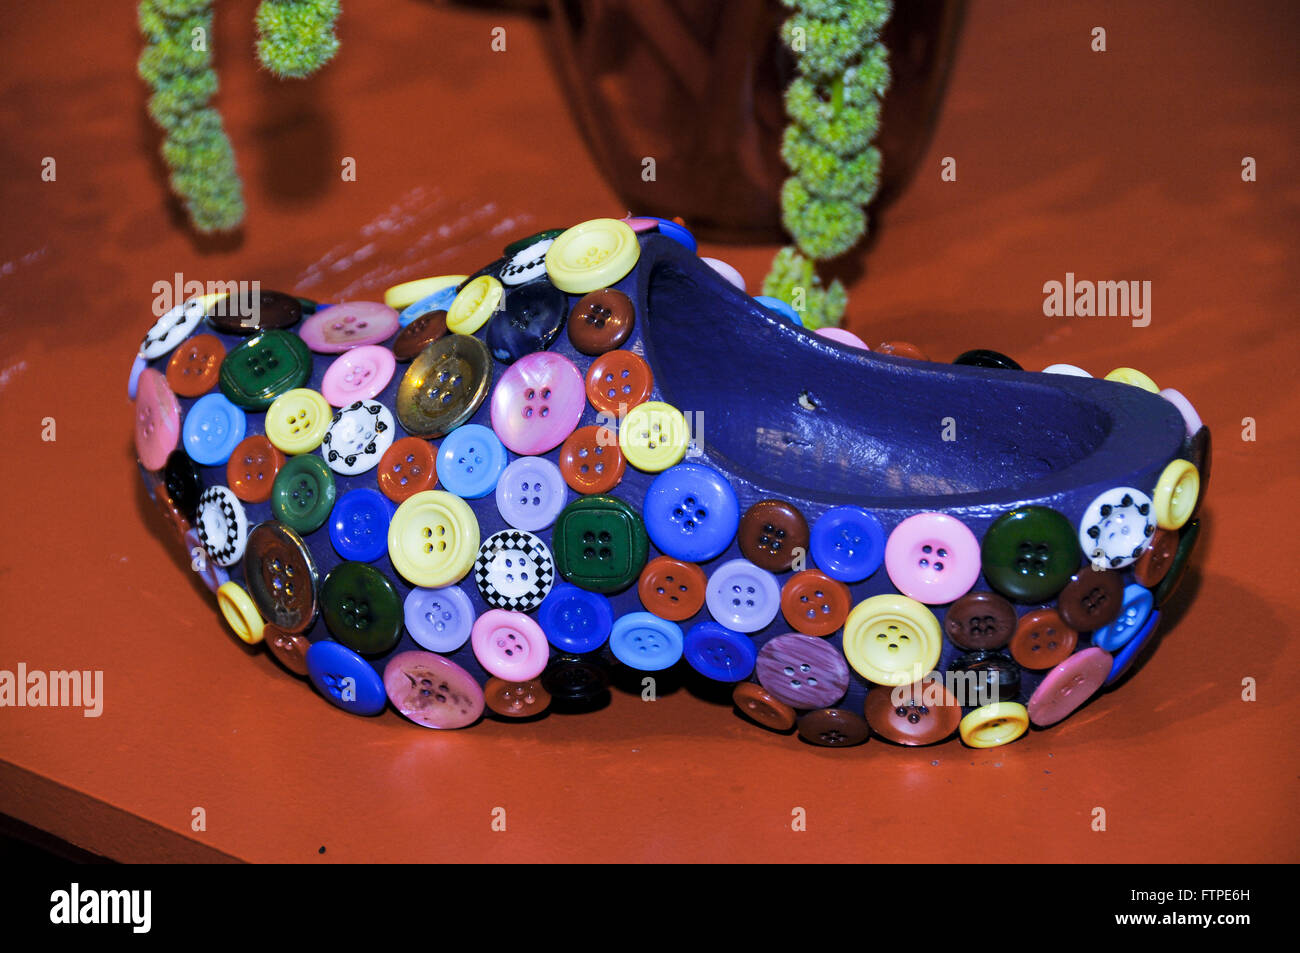 Dutch clog trimmed with buttons on the grounds of Expoflora - Stock Image